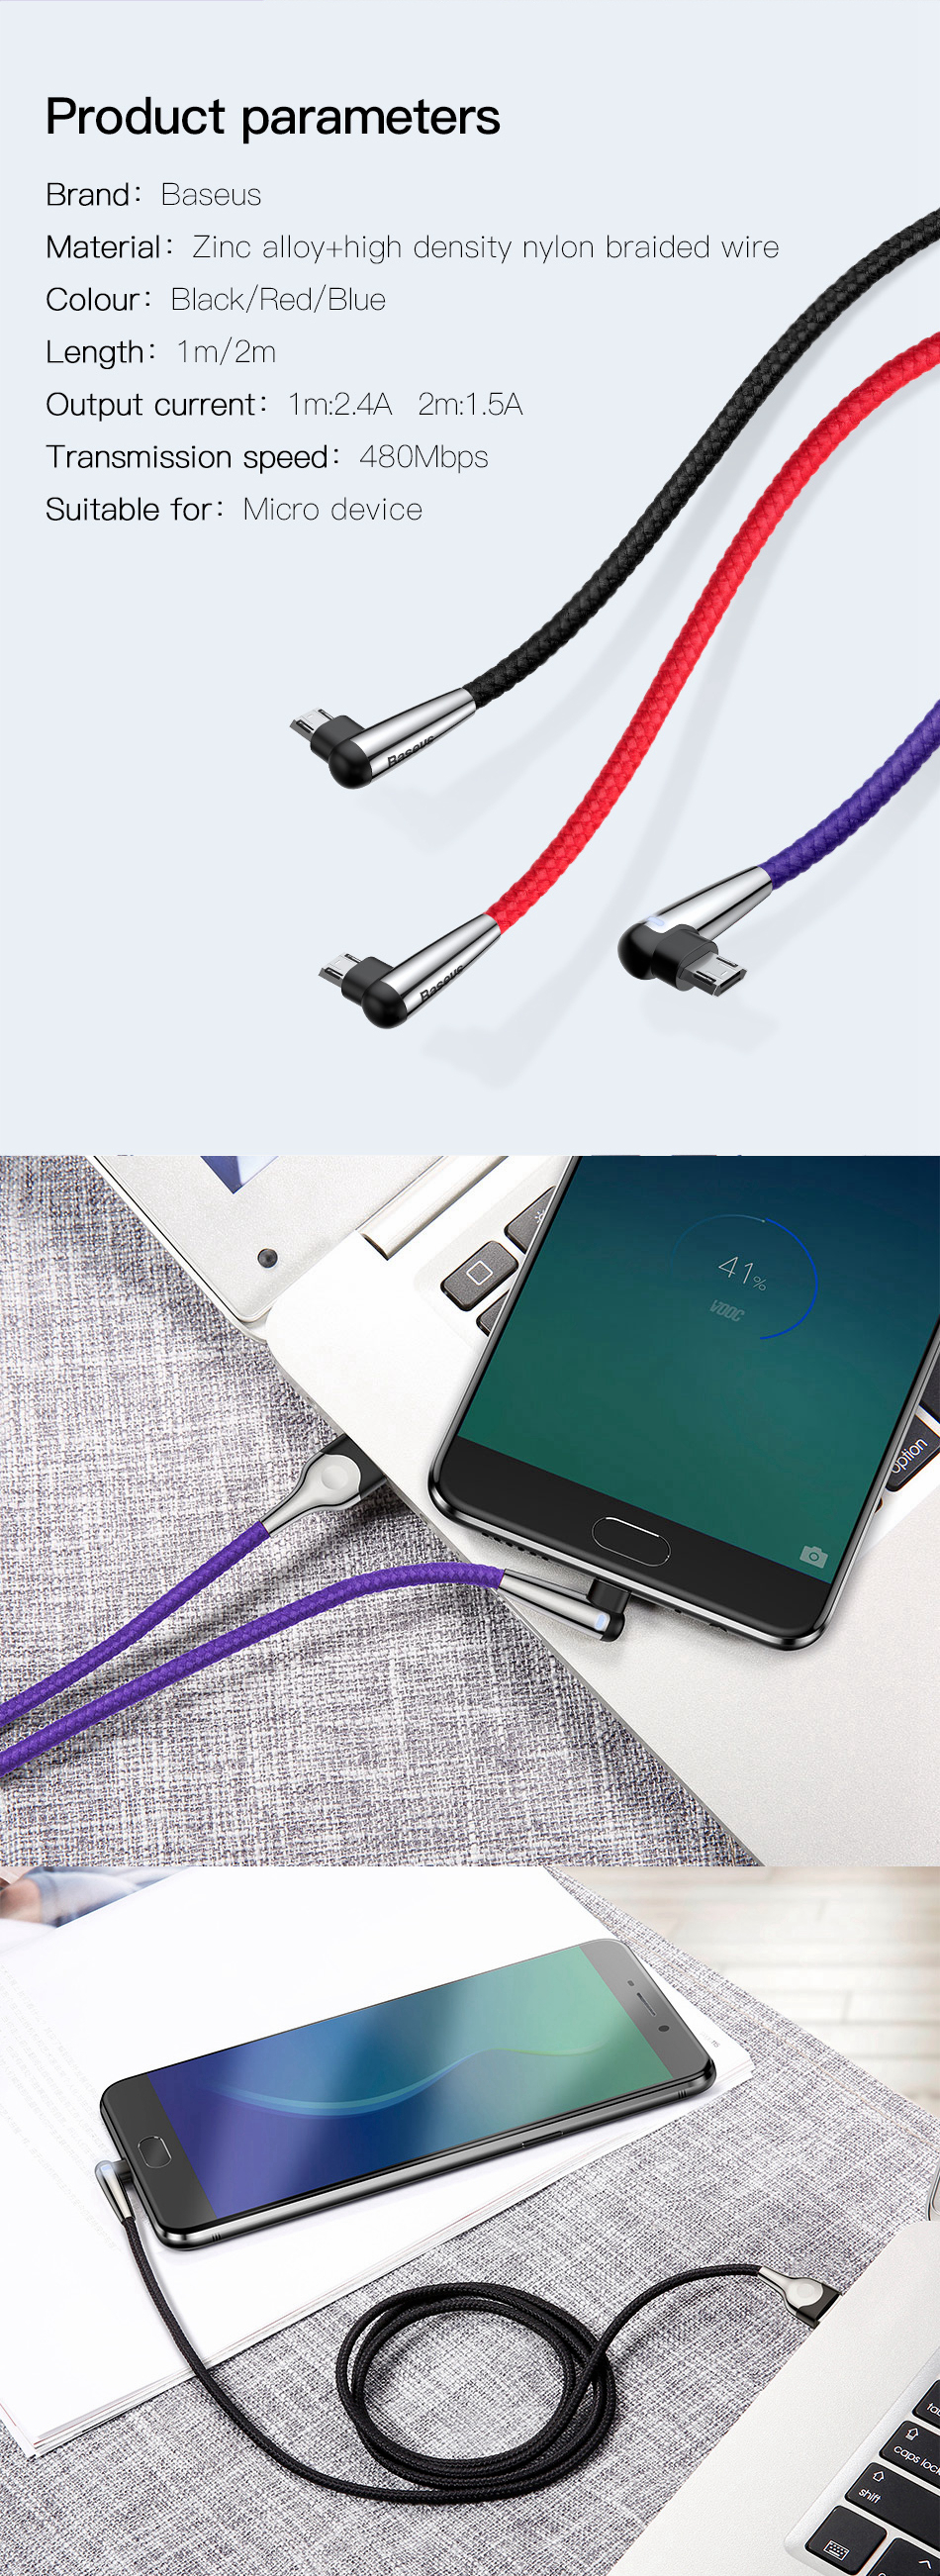 Baseus Double-insertion Reversible Micro USB 90 Degree Angle LED Light Fast Charging Data Cable 2M